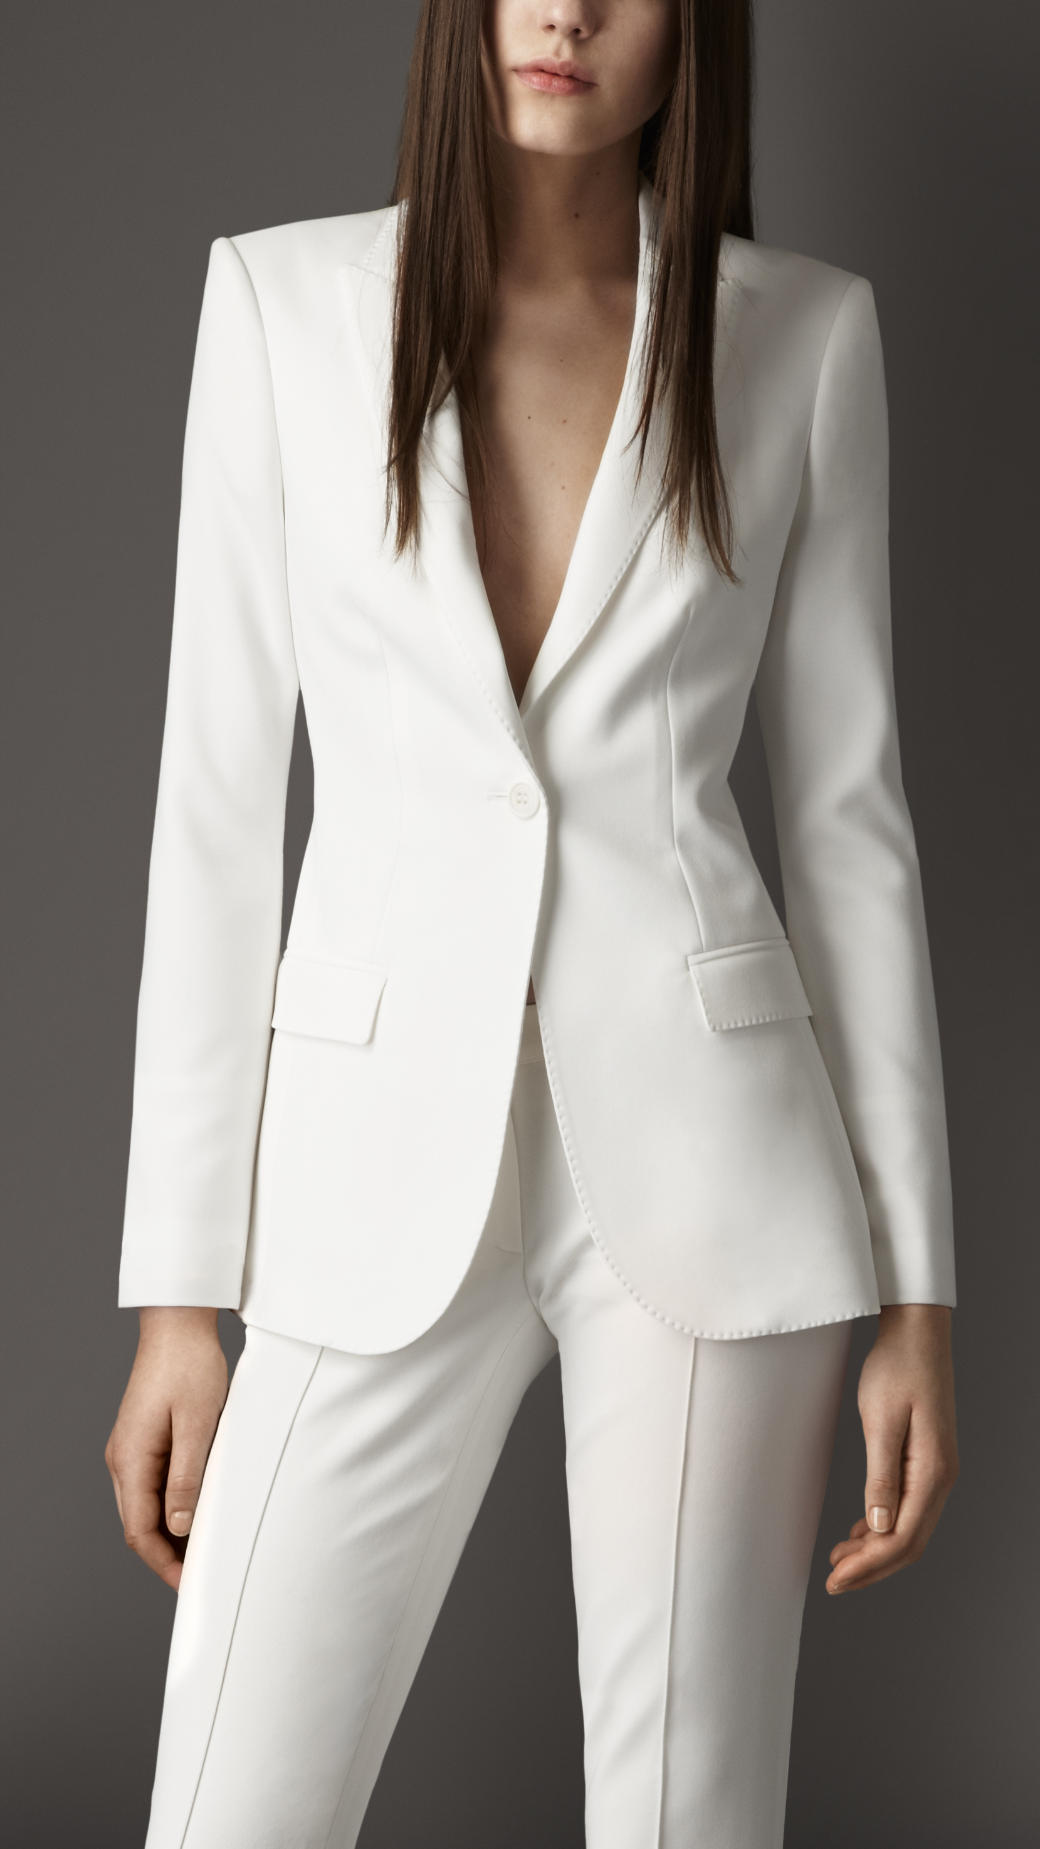 """""""BLAZERS OF GLORY Looking for lightweight jackets that can be worn both as part of a suit or as stylish separates? ModCloth has a stylish selection of blazers that'll really get the job done."""